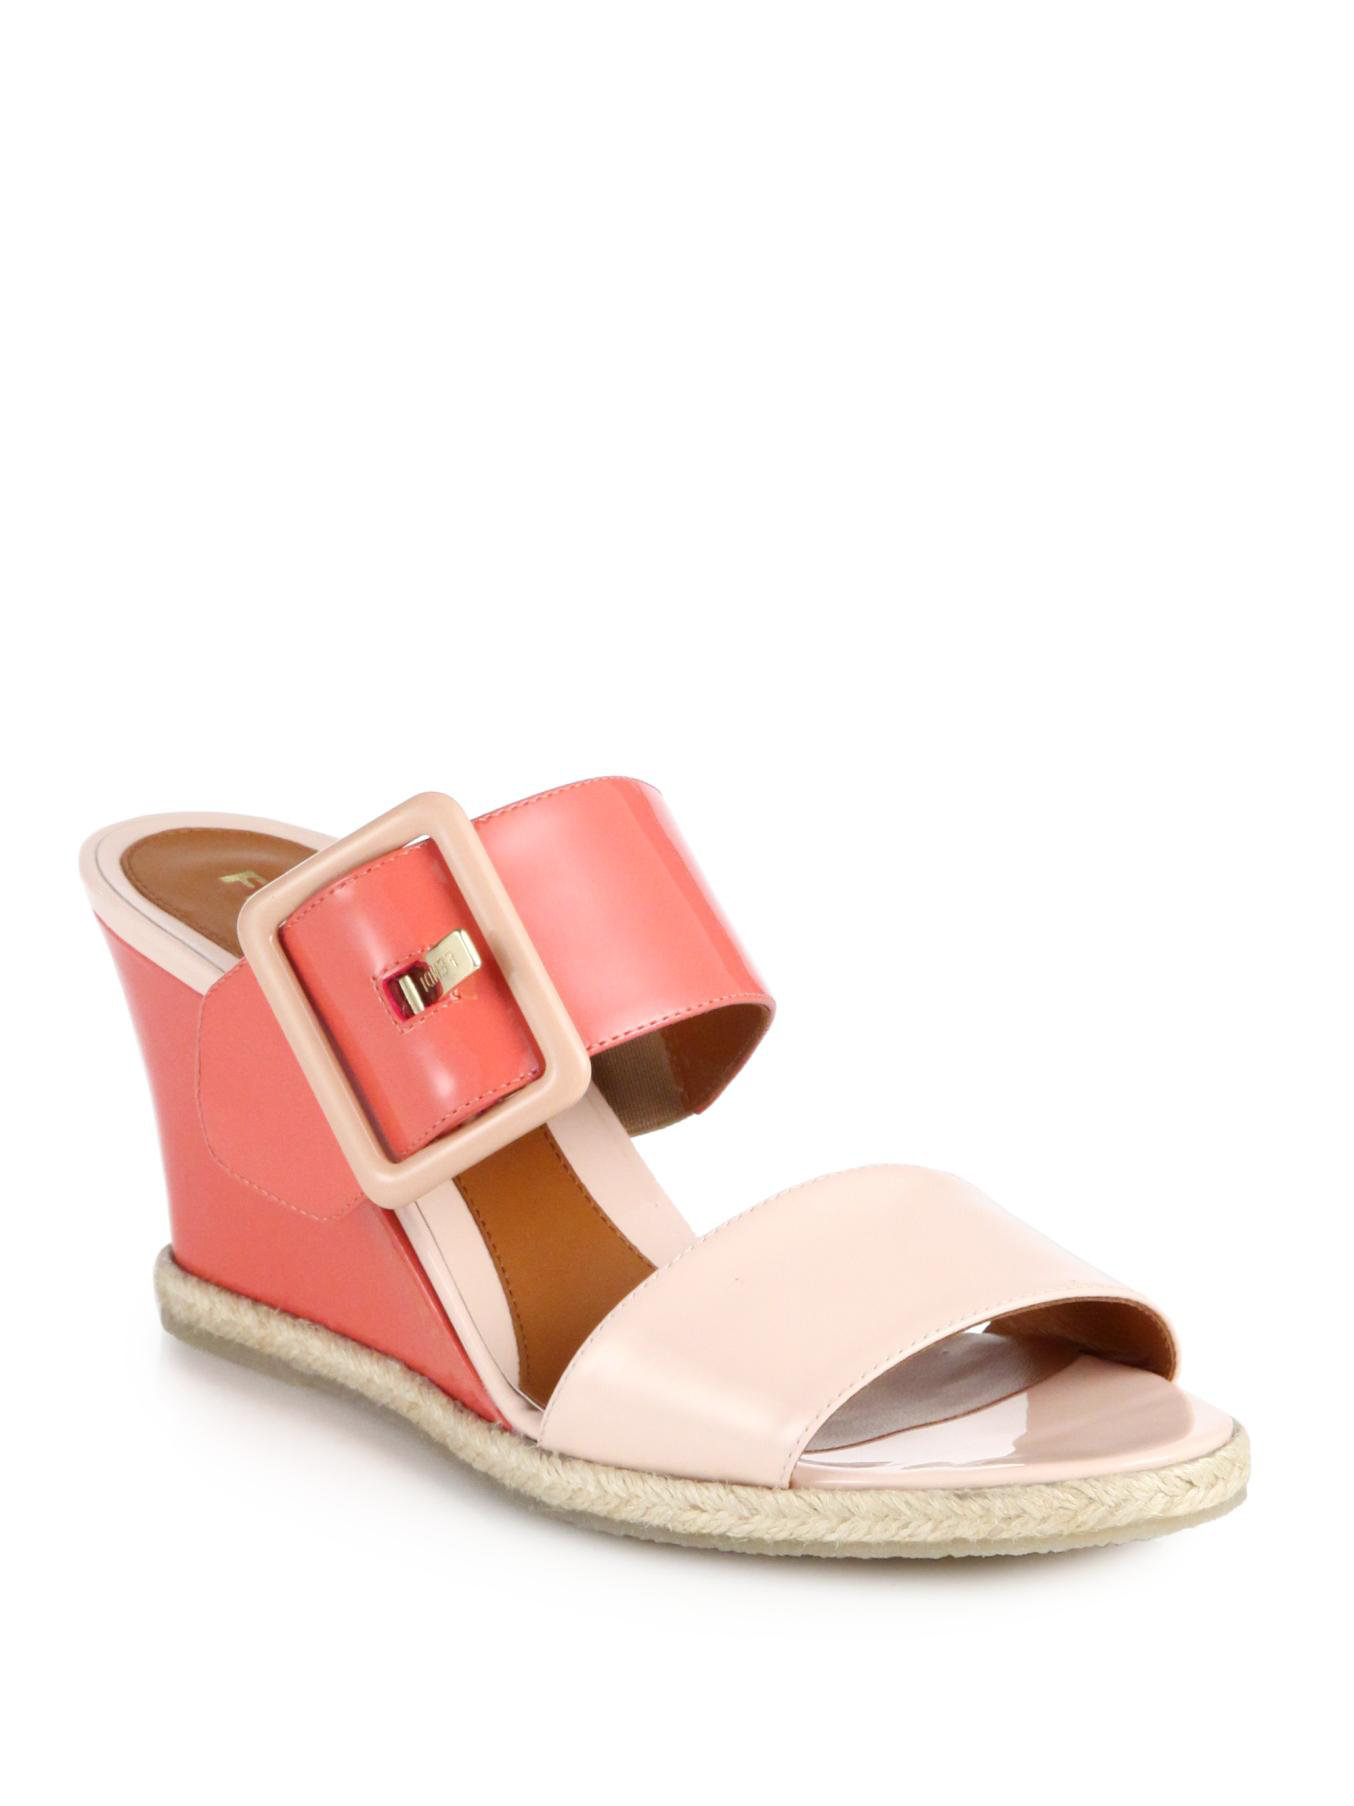 Fendi Leather Slingback Wedge Sandals clearance fast delivery sale online shopping pay with visa online 3CEcG0GLp